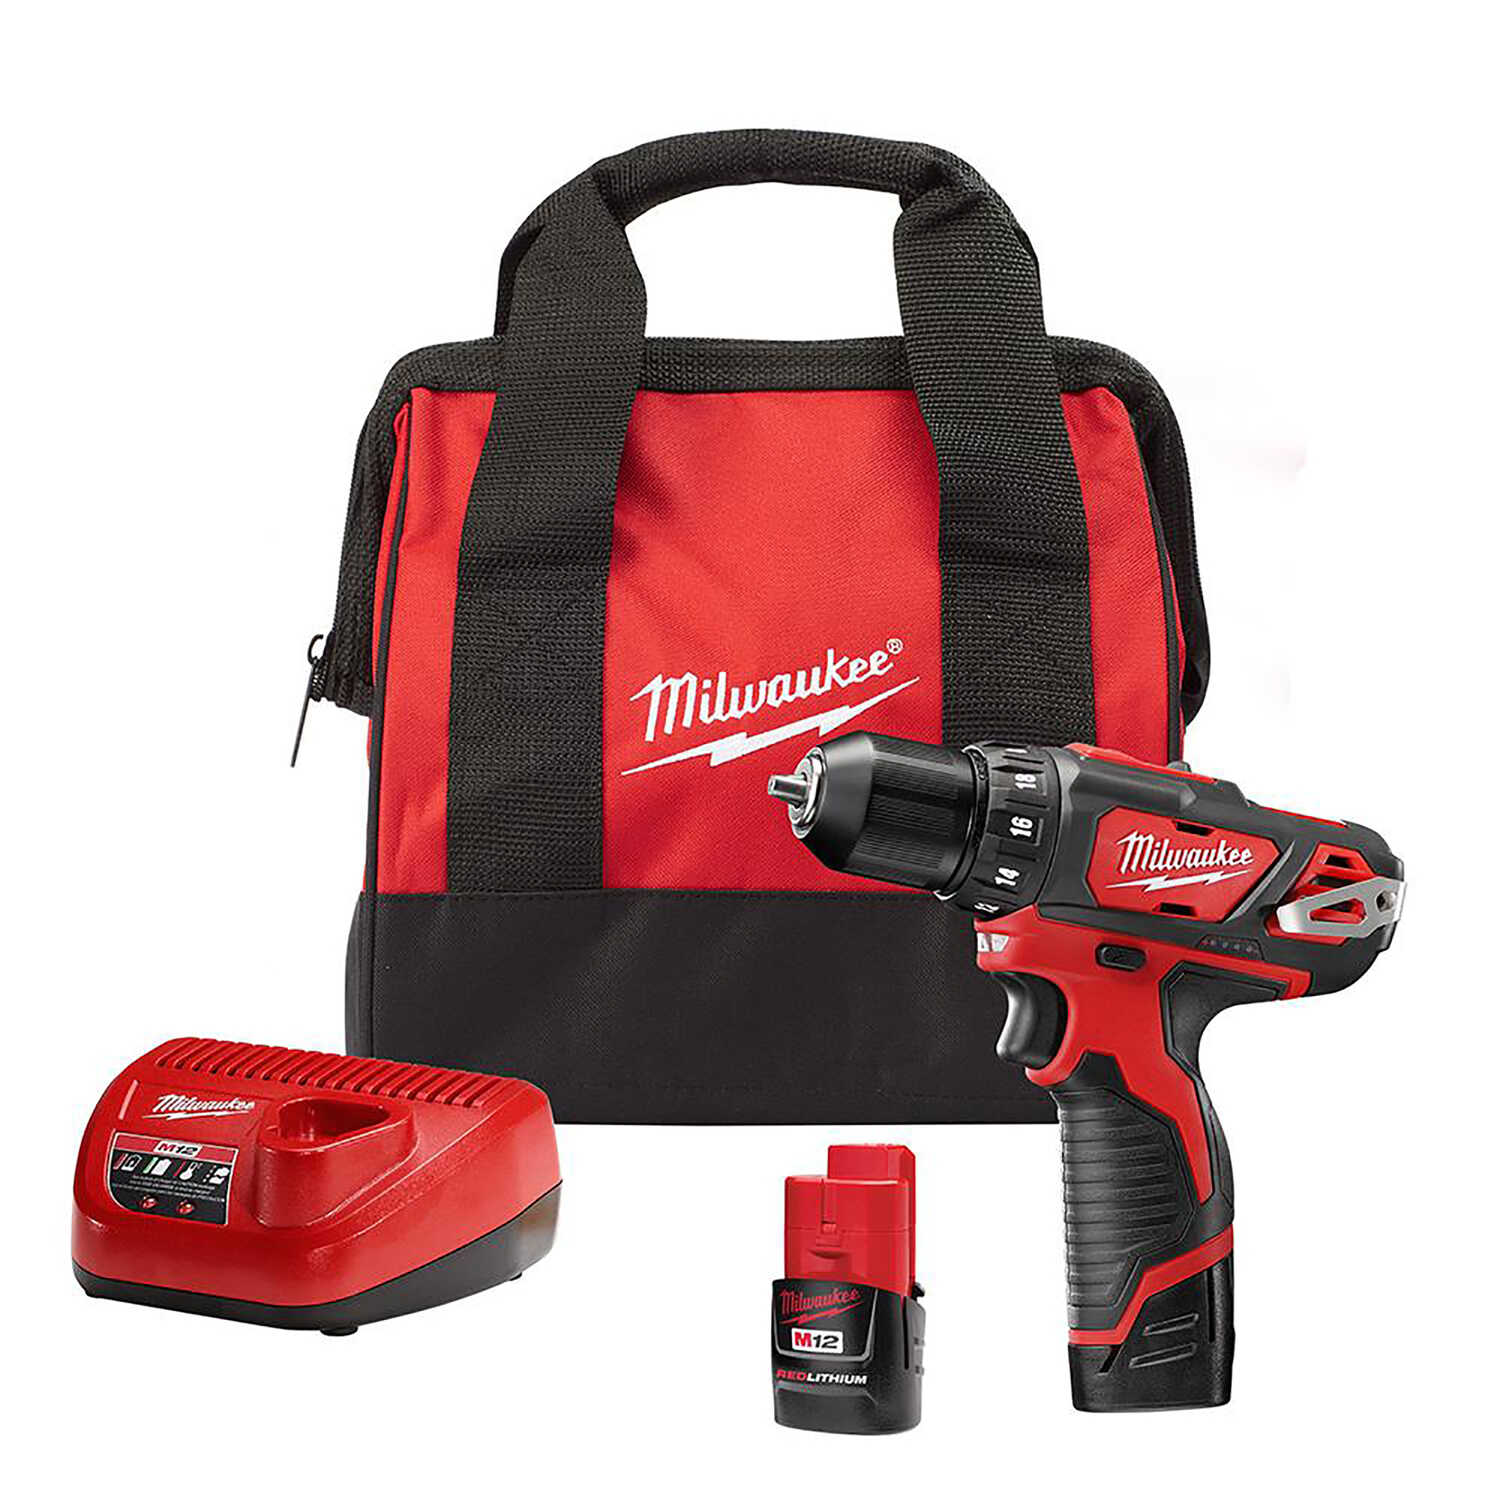 Milwaukee  M12  12 volt 3/8 in. Cordless Compact Drill/Driver  Kit 1500 rpm 2 speed